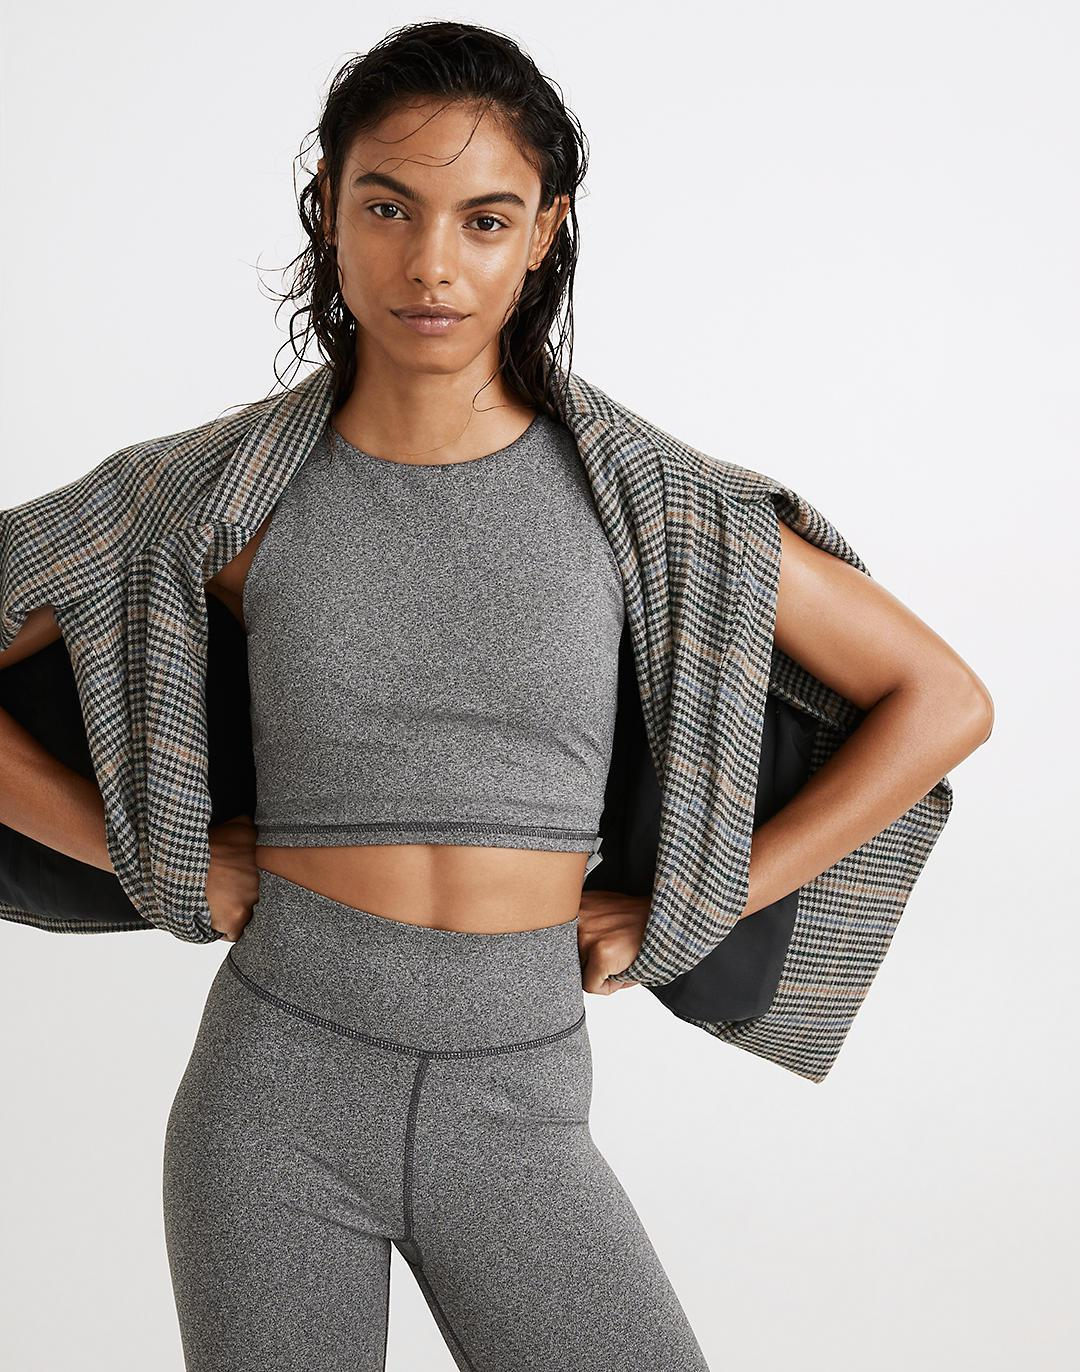 MWL Form Racerback Crop Top in Heathered Charcoal